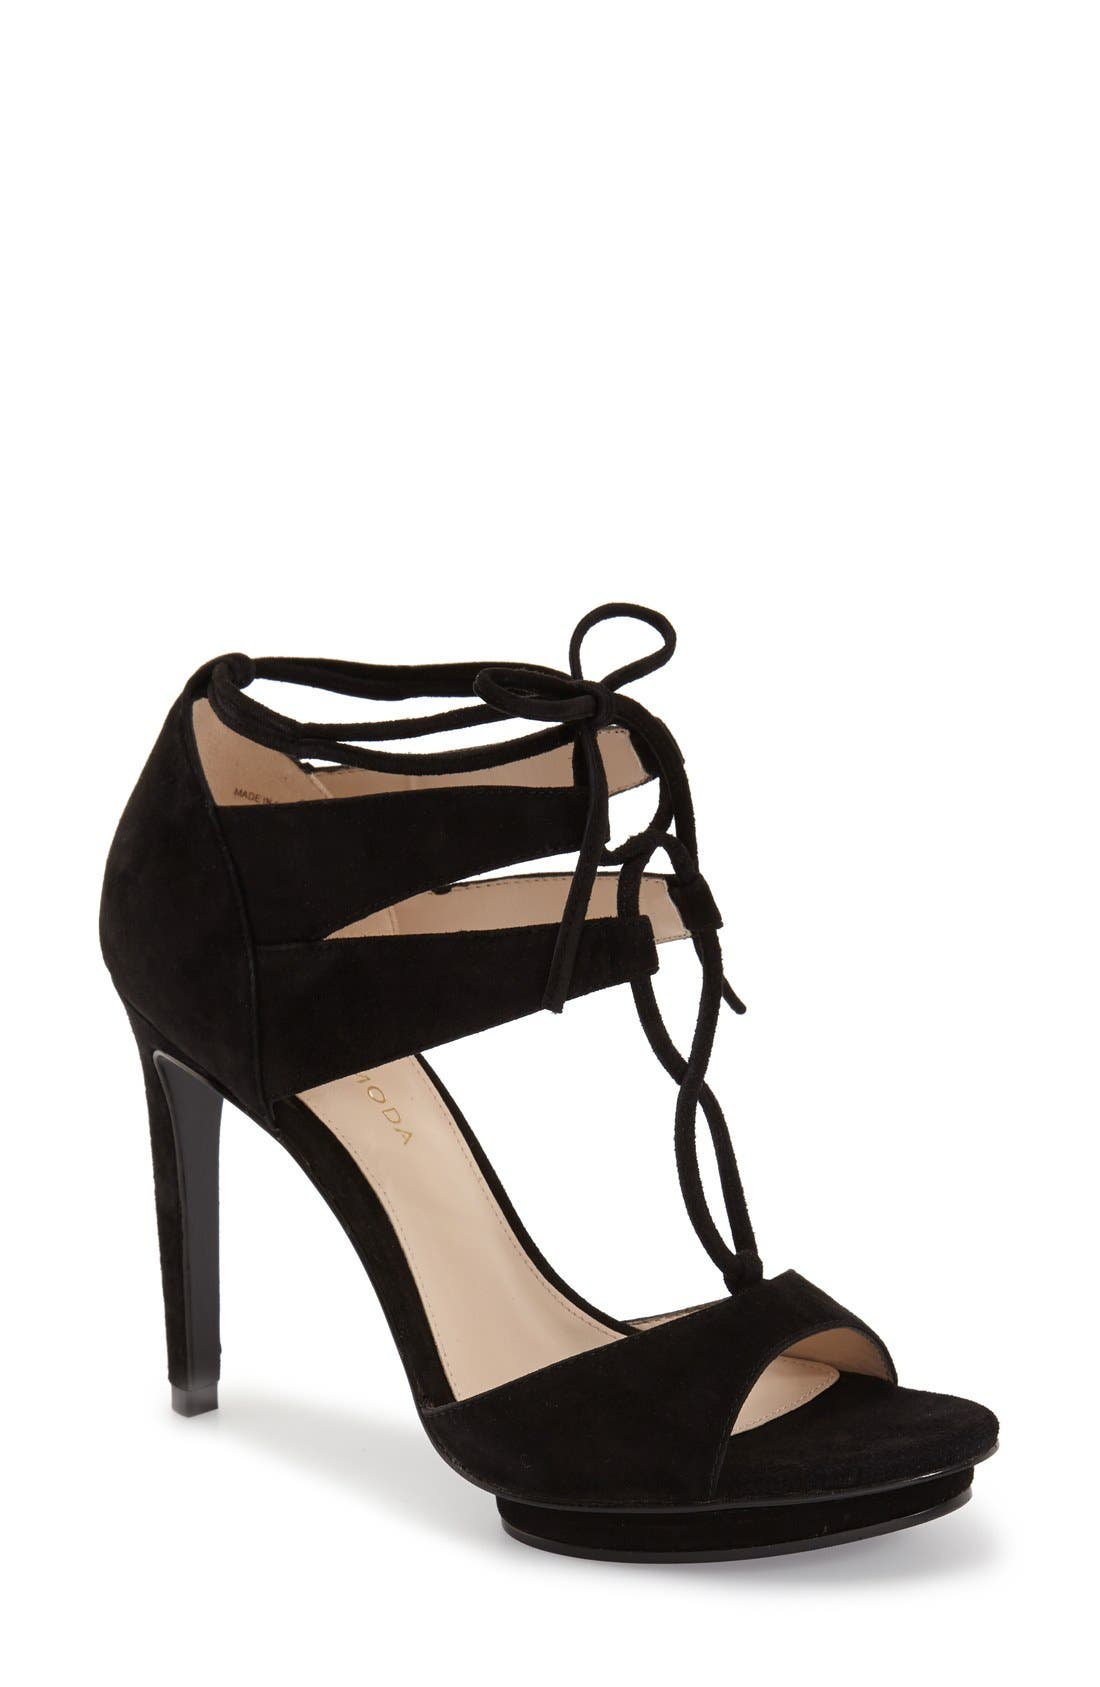 Alternate Image 1 Selected - Pelle Moda 'Talbot' Lace-Up Sandal (Women)